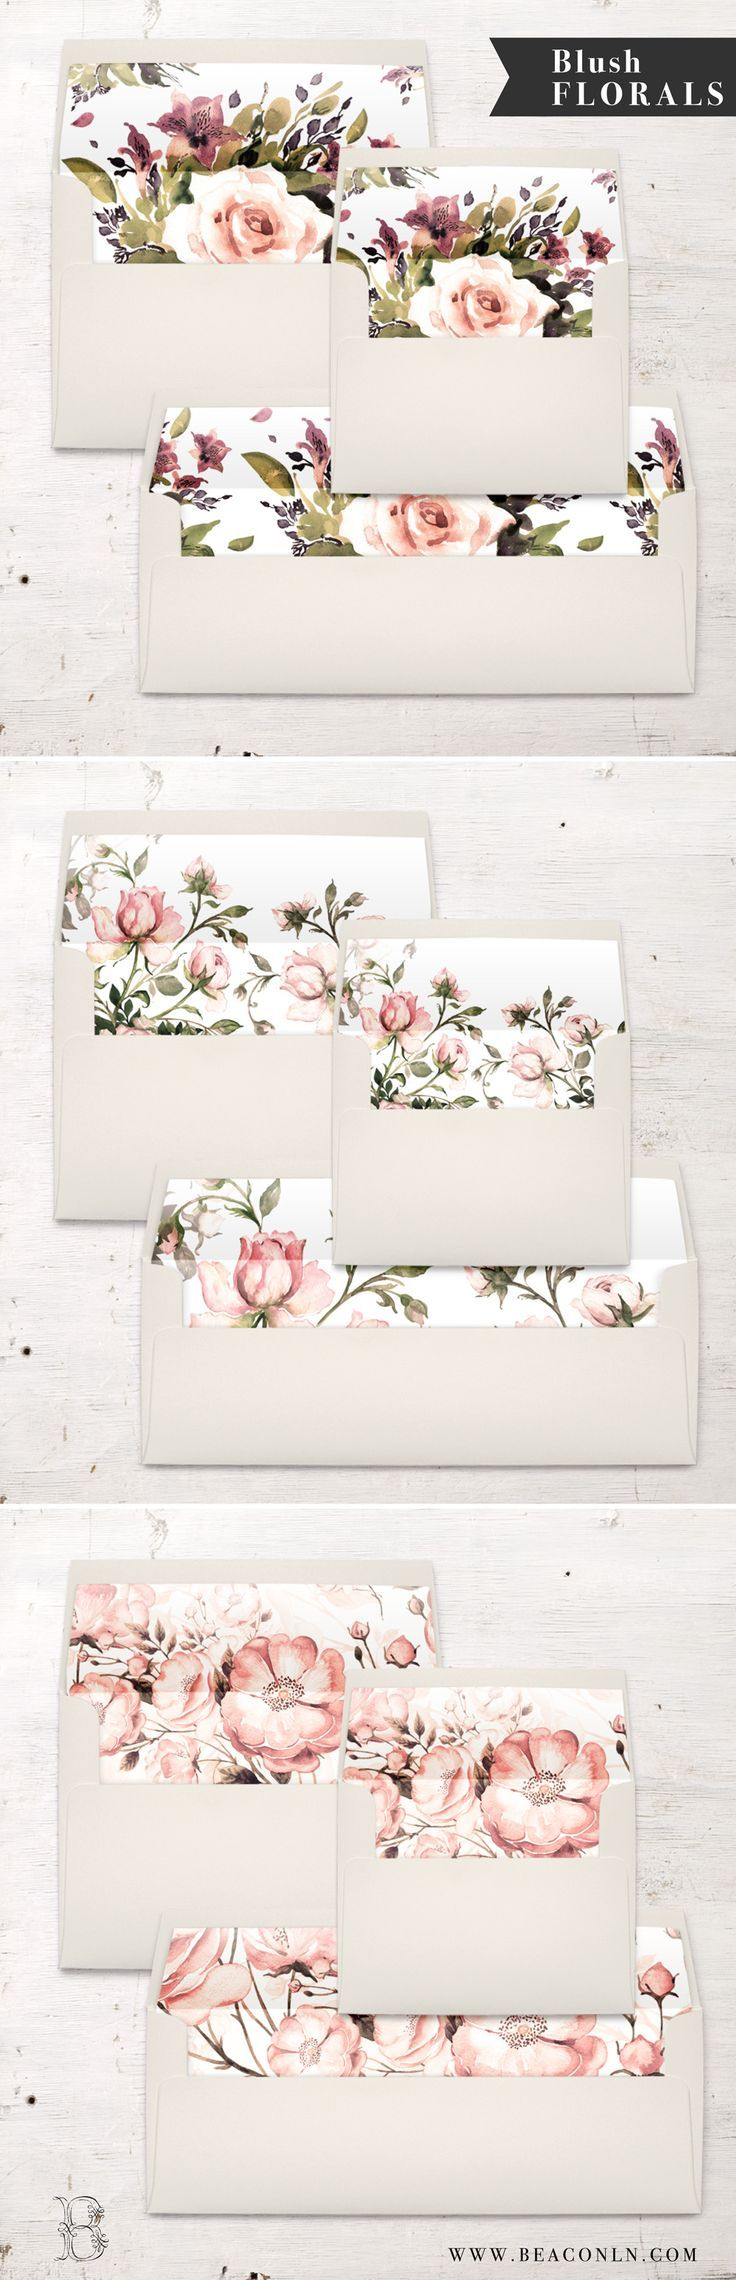 Blush Floral Envelope Liners By Beacon Lane. New for 2017!